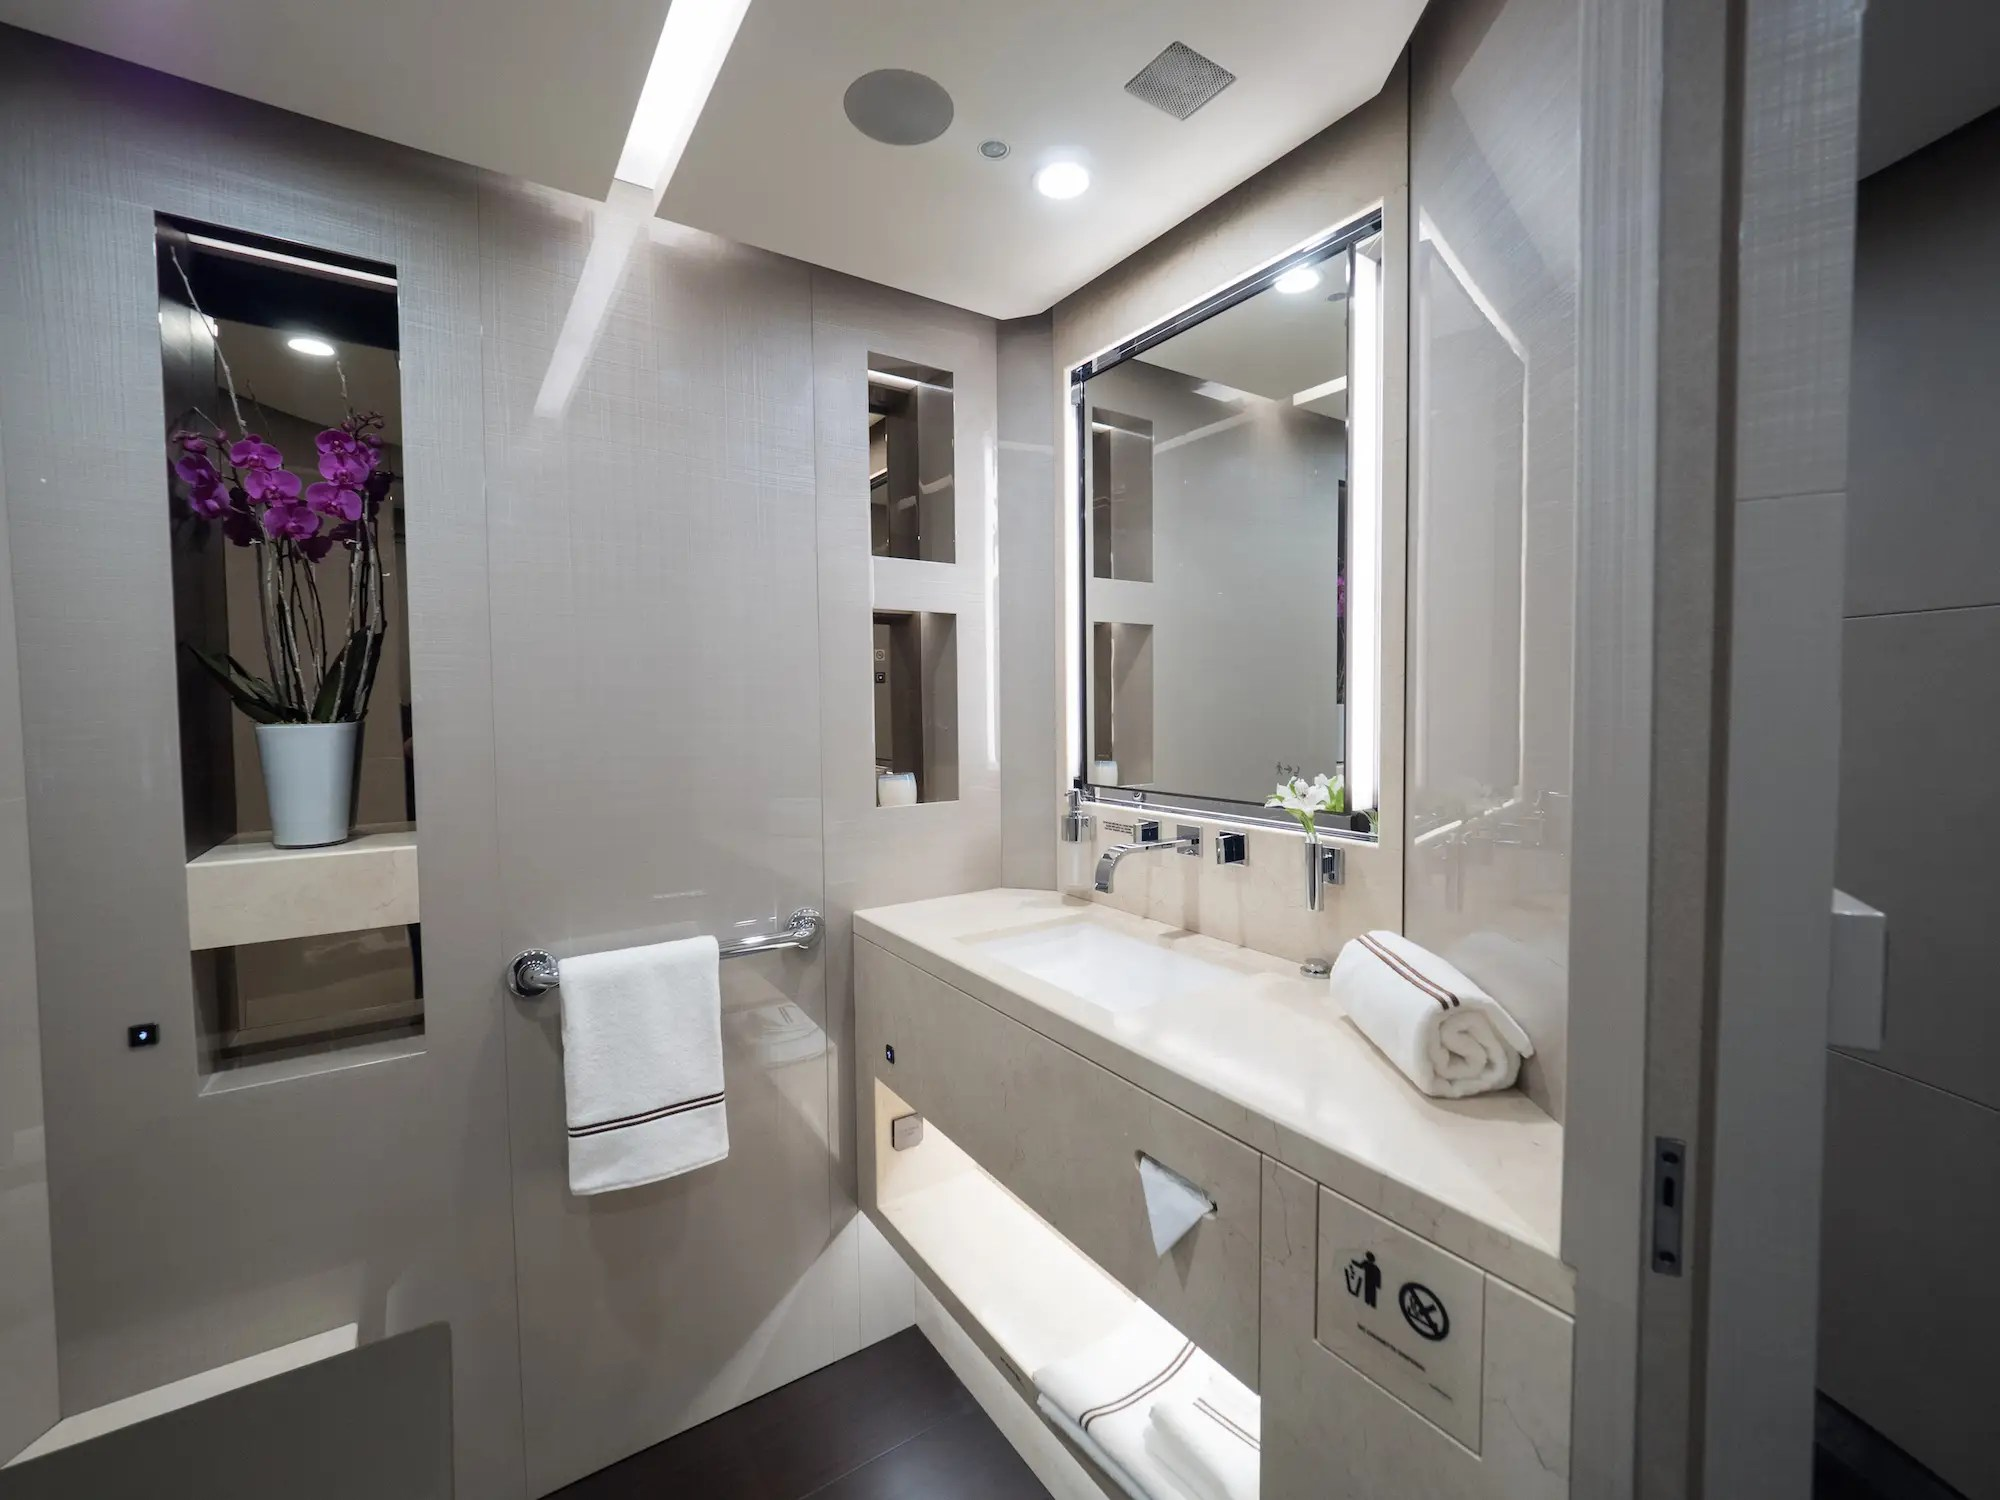 In total, the plane is equipped with five bathrooms.